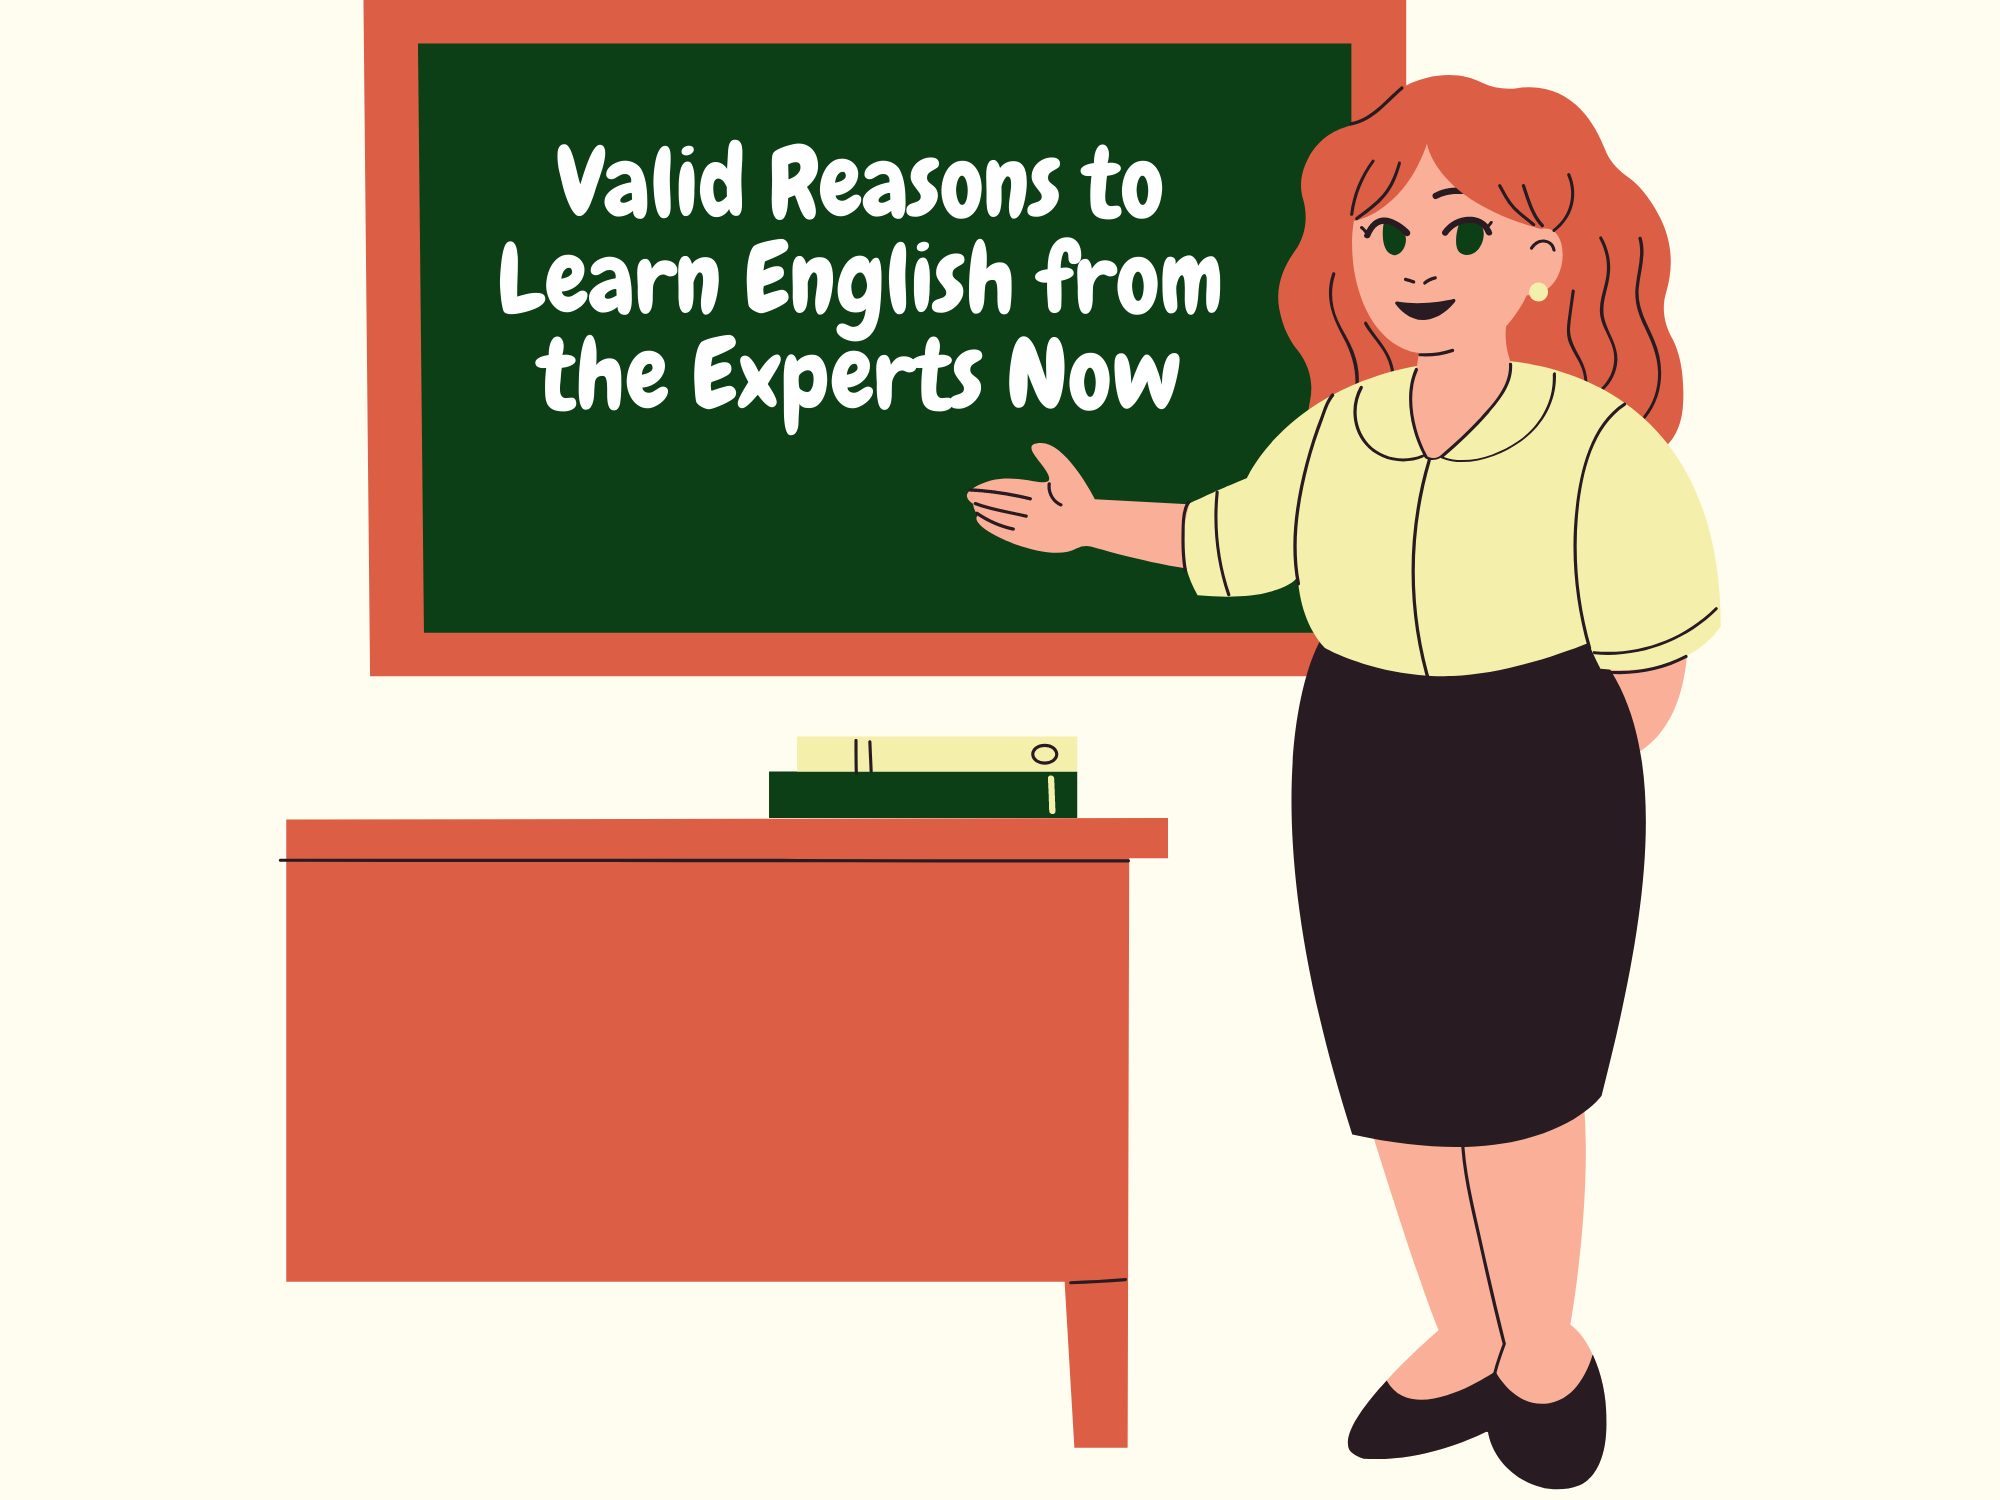 Valid-Reasons-to-Learn-English-from-the-Experts-Now